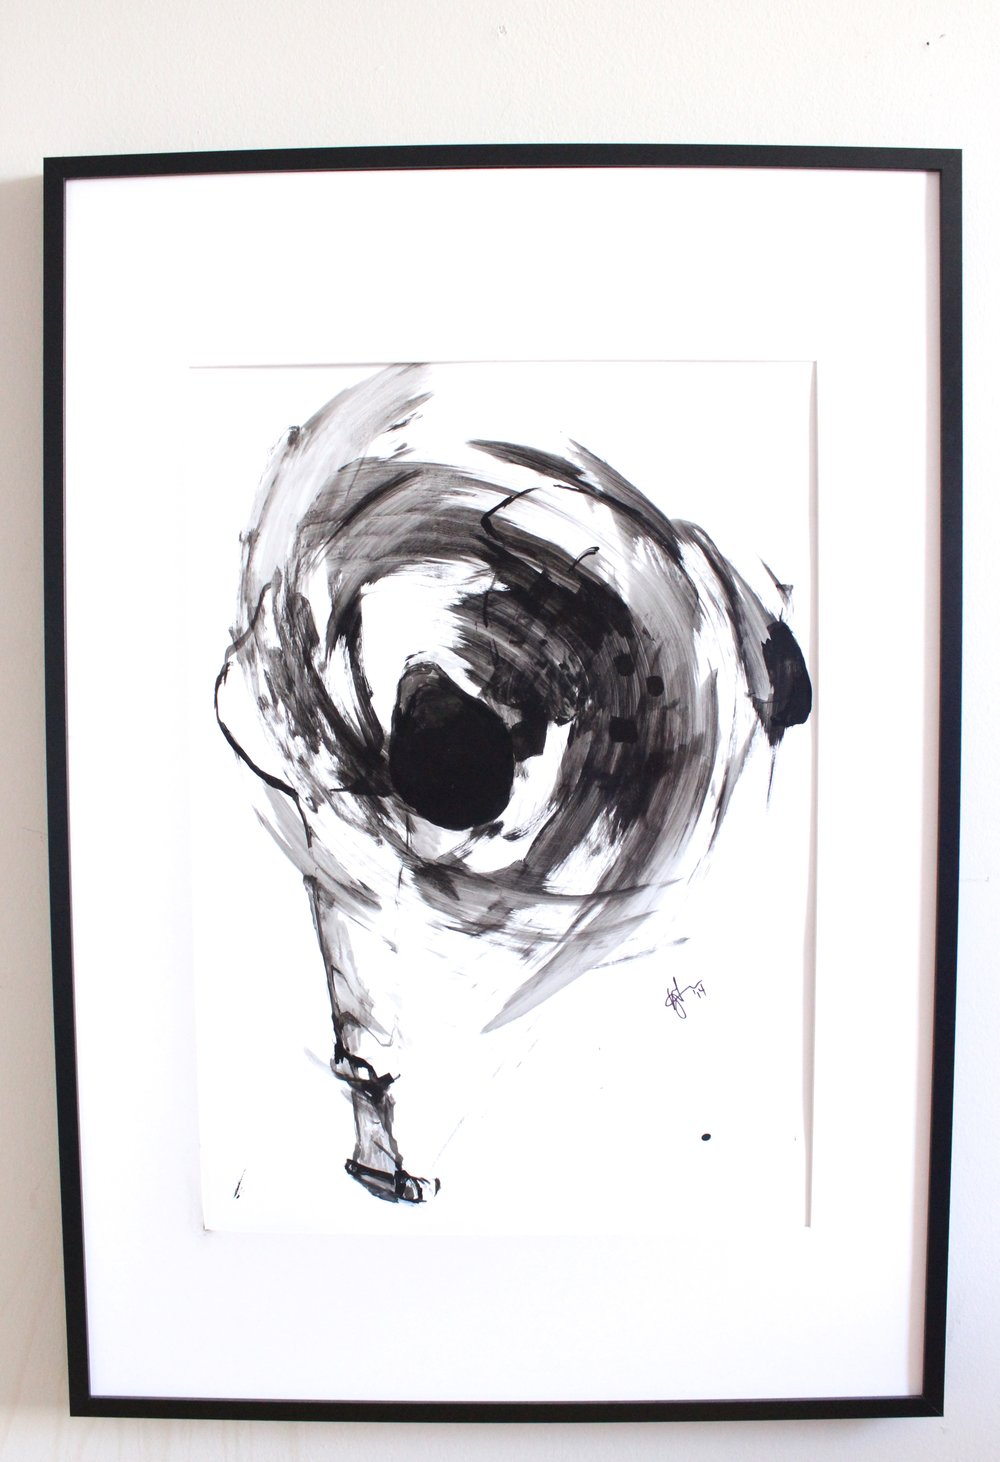 Uchimata Judo Throw, 2014. Ink on paper. 36x48